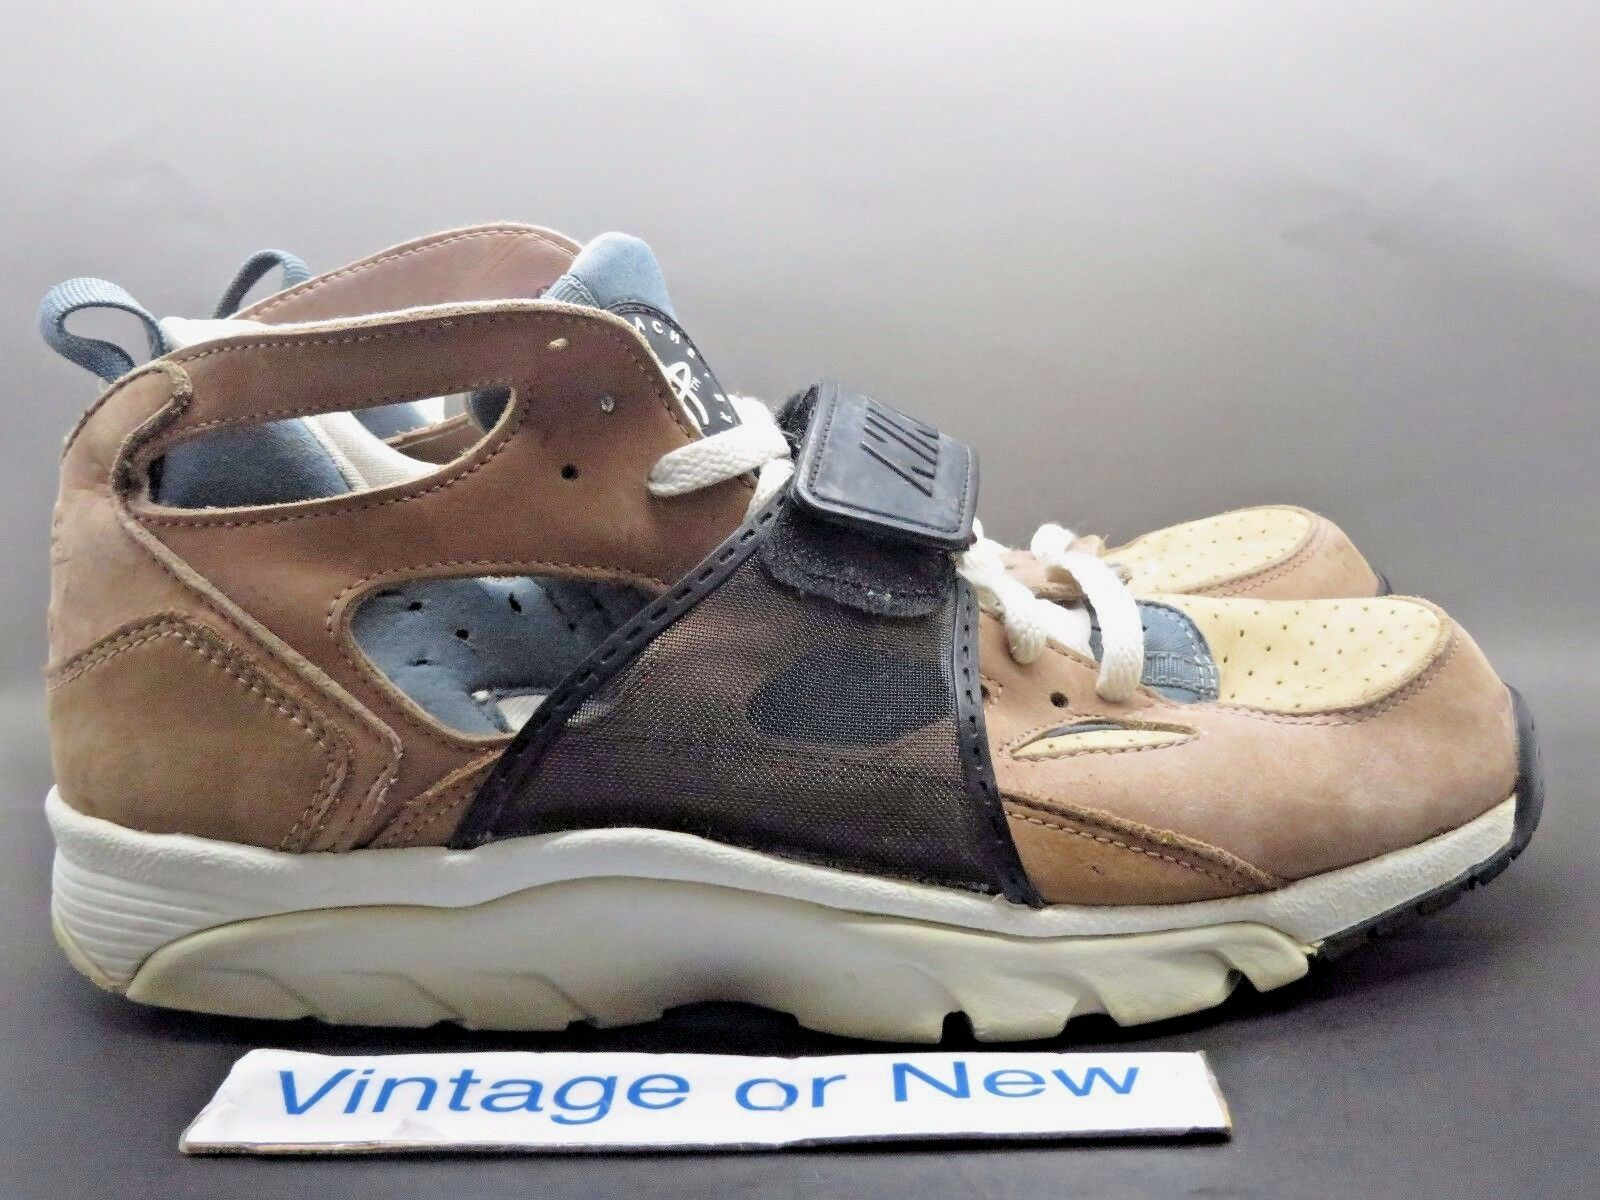 VTG Nike Air Huarache Trainer Escape 2003 Price reduction